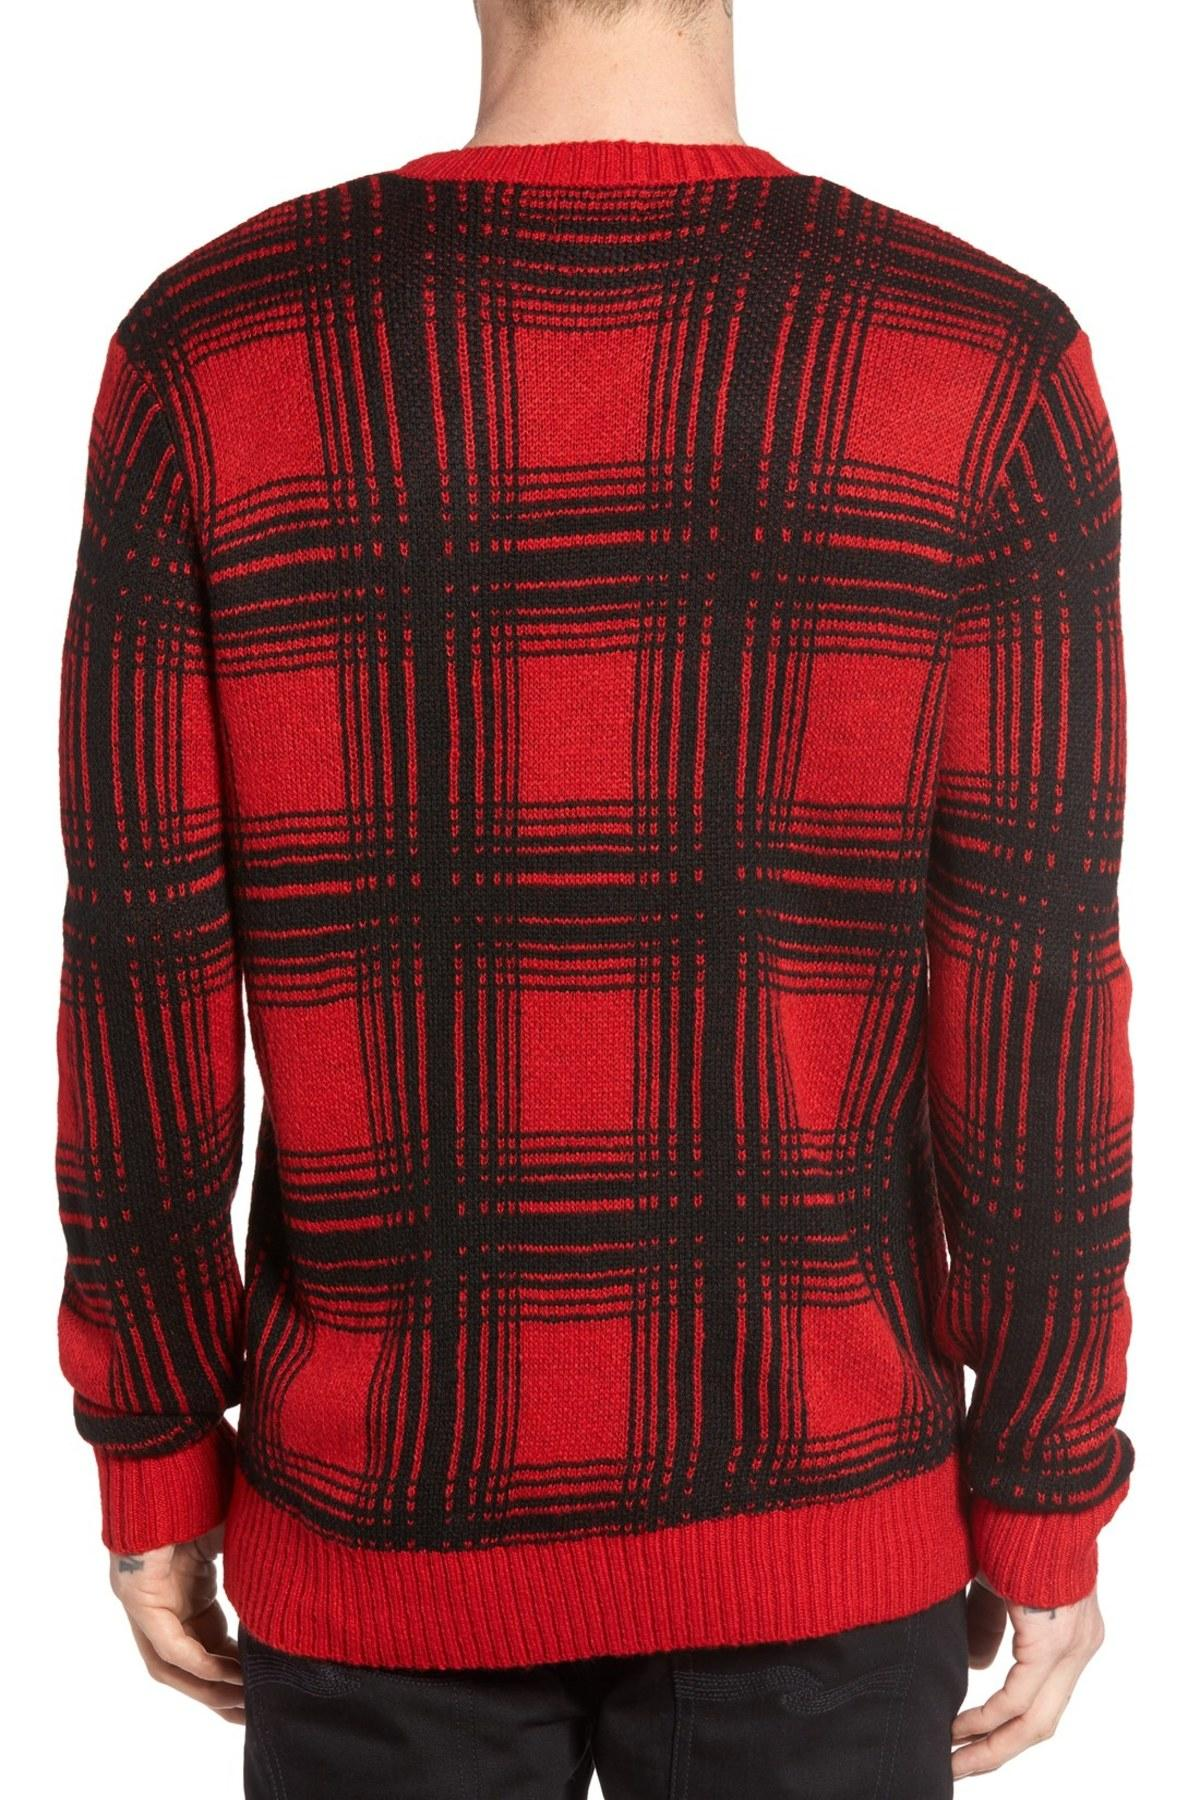 Lyst - Obey Backside Plaid Sweater in Red for Men